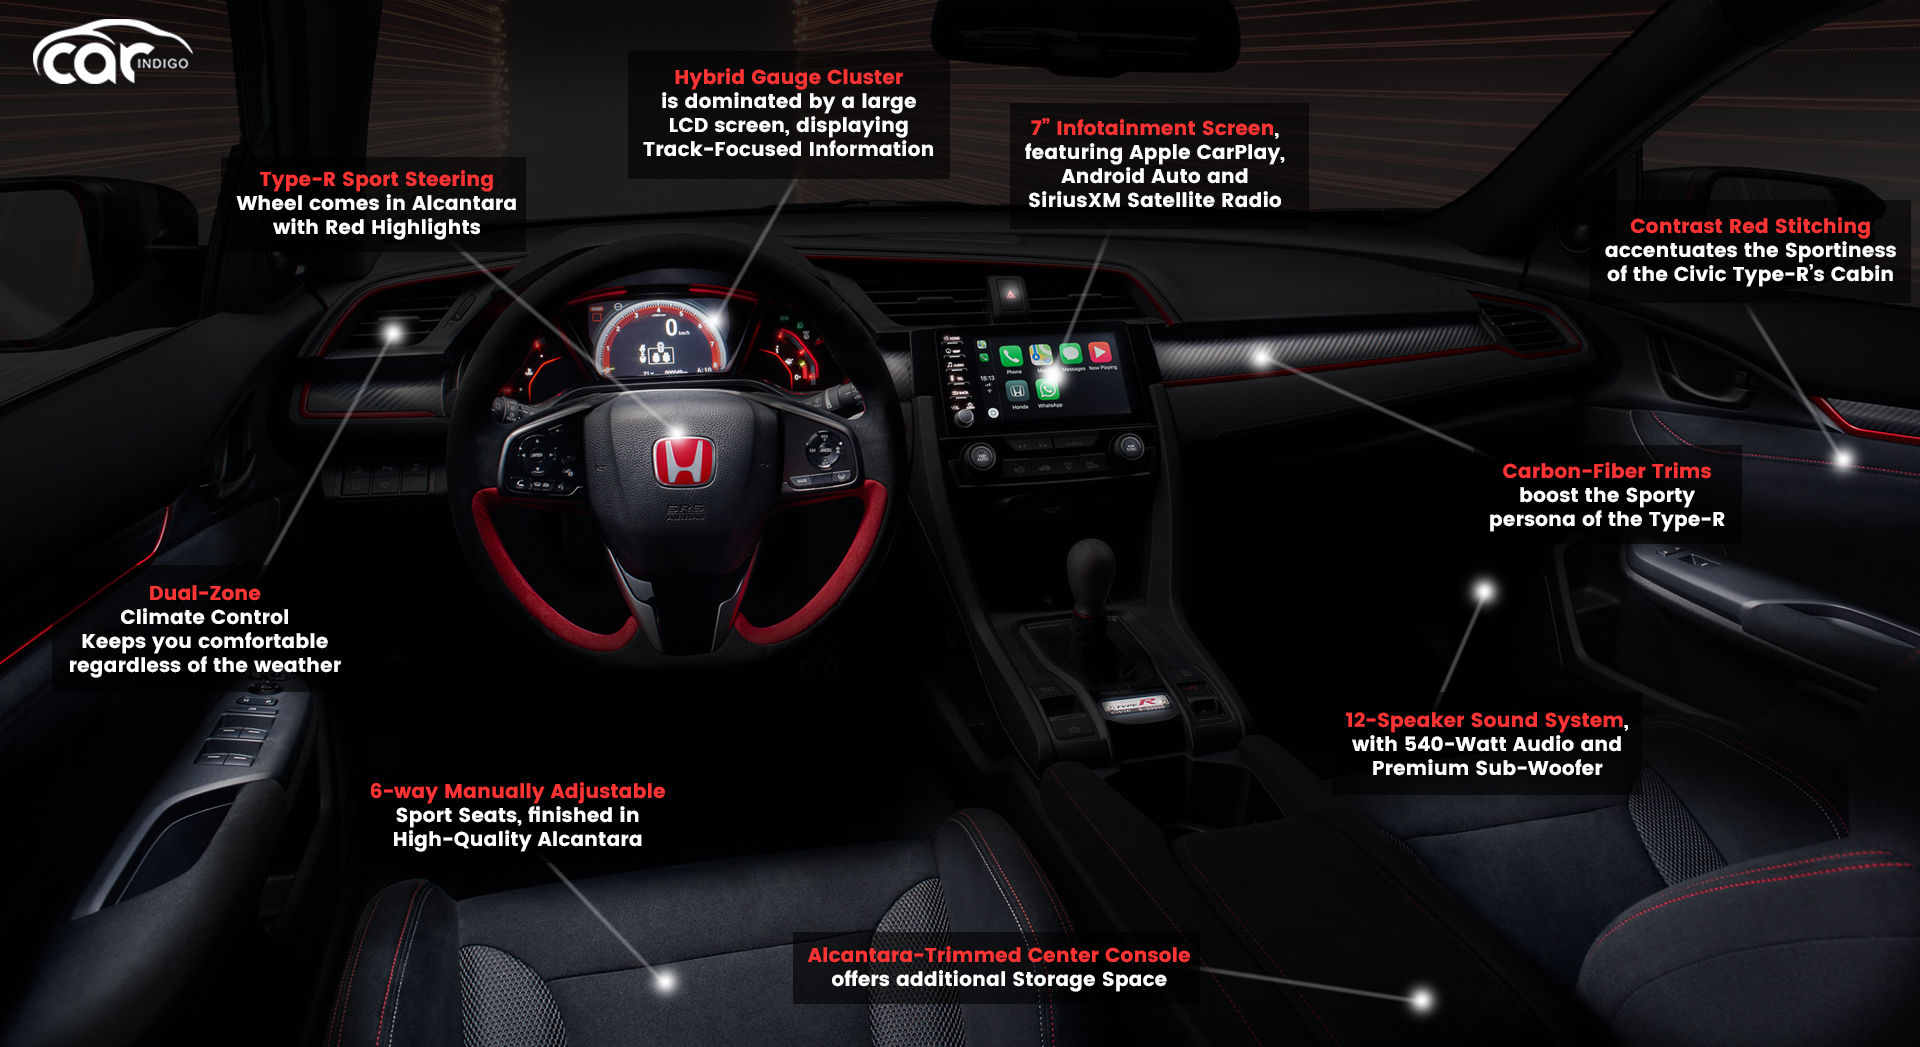 2021 Honda Civic Type-R, Interior, Features, Cockpit View Infopic